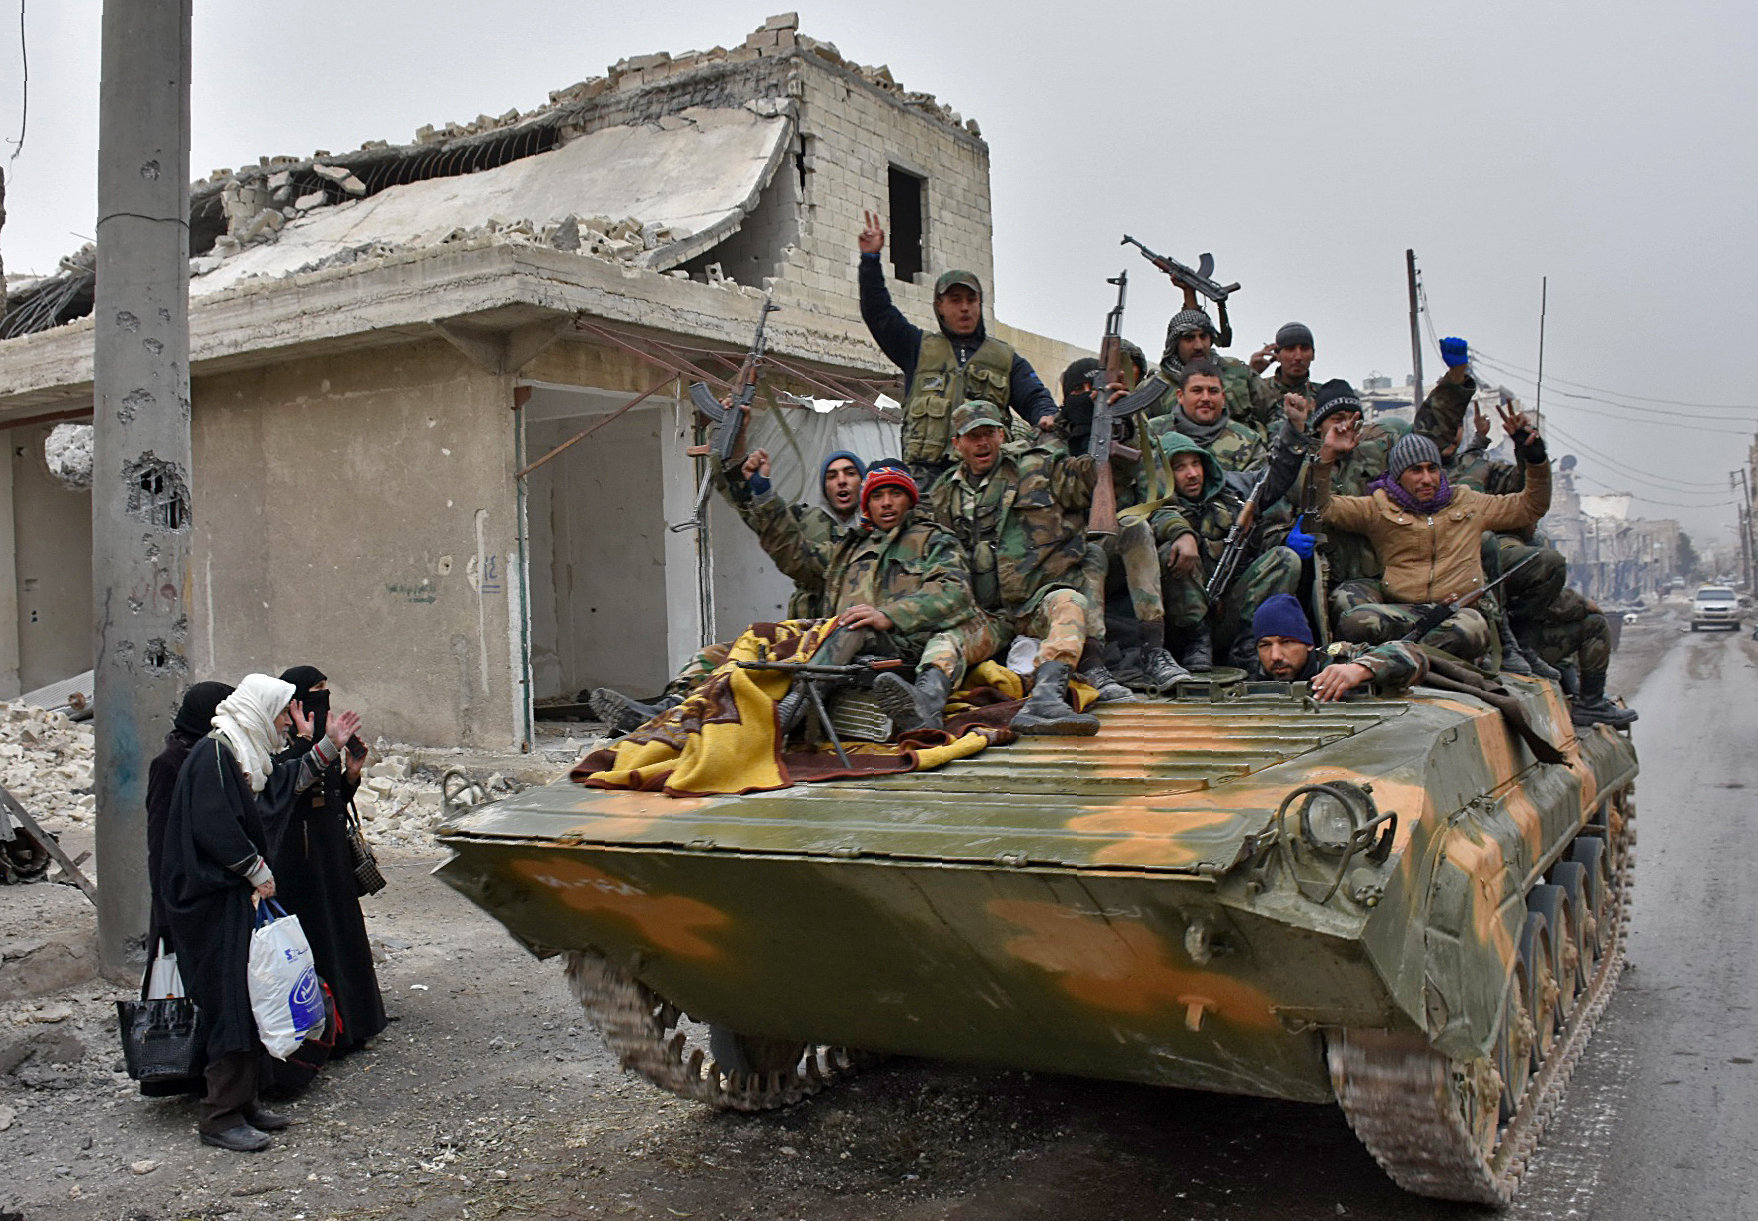 Syrian pro-government forces sit on a military vehicle driving past residents fleeing the eastern part of Aleppo and gathering in Masaken Hanano, a former rebel-held district which was retaken by the regime forces last week, on November 30, 2016.